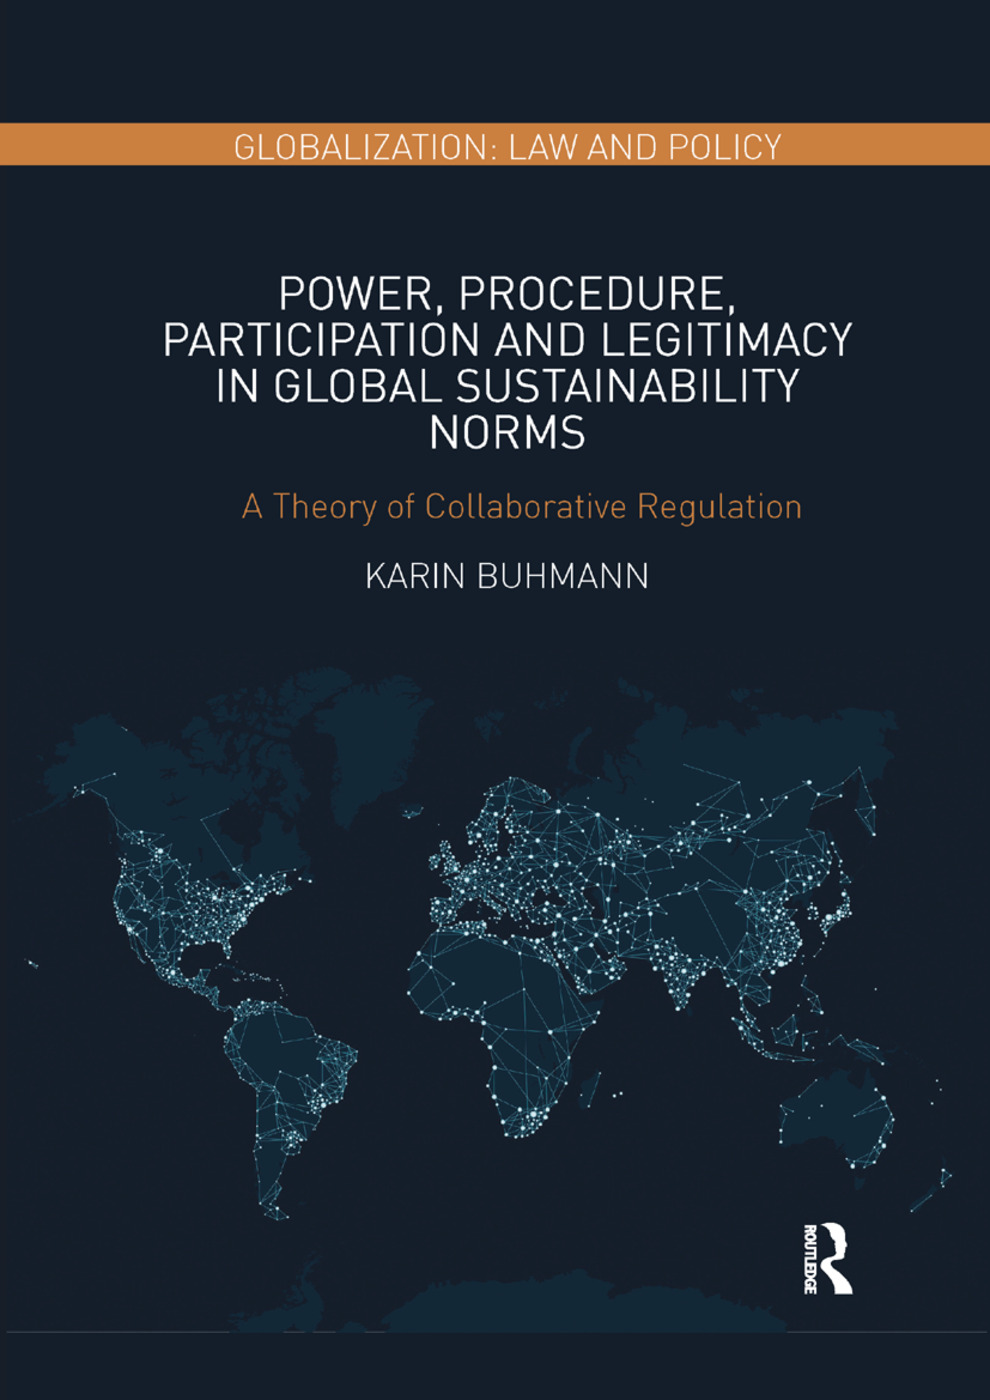 Power, Procedure, Participation and Legitimacy in Global Sustainability Norms: A Theory of Collaborative Regulation book cover